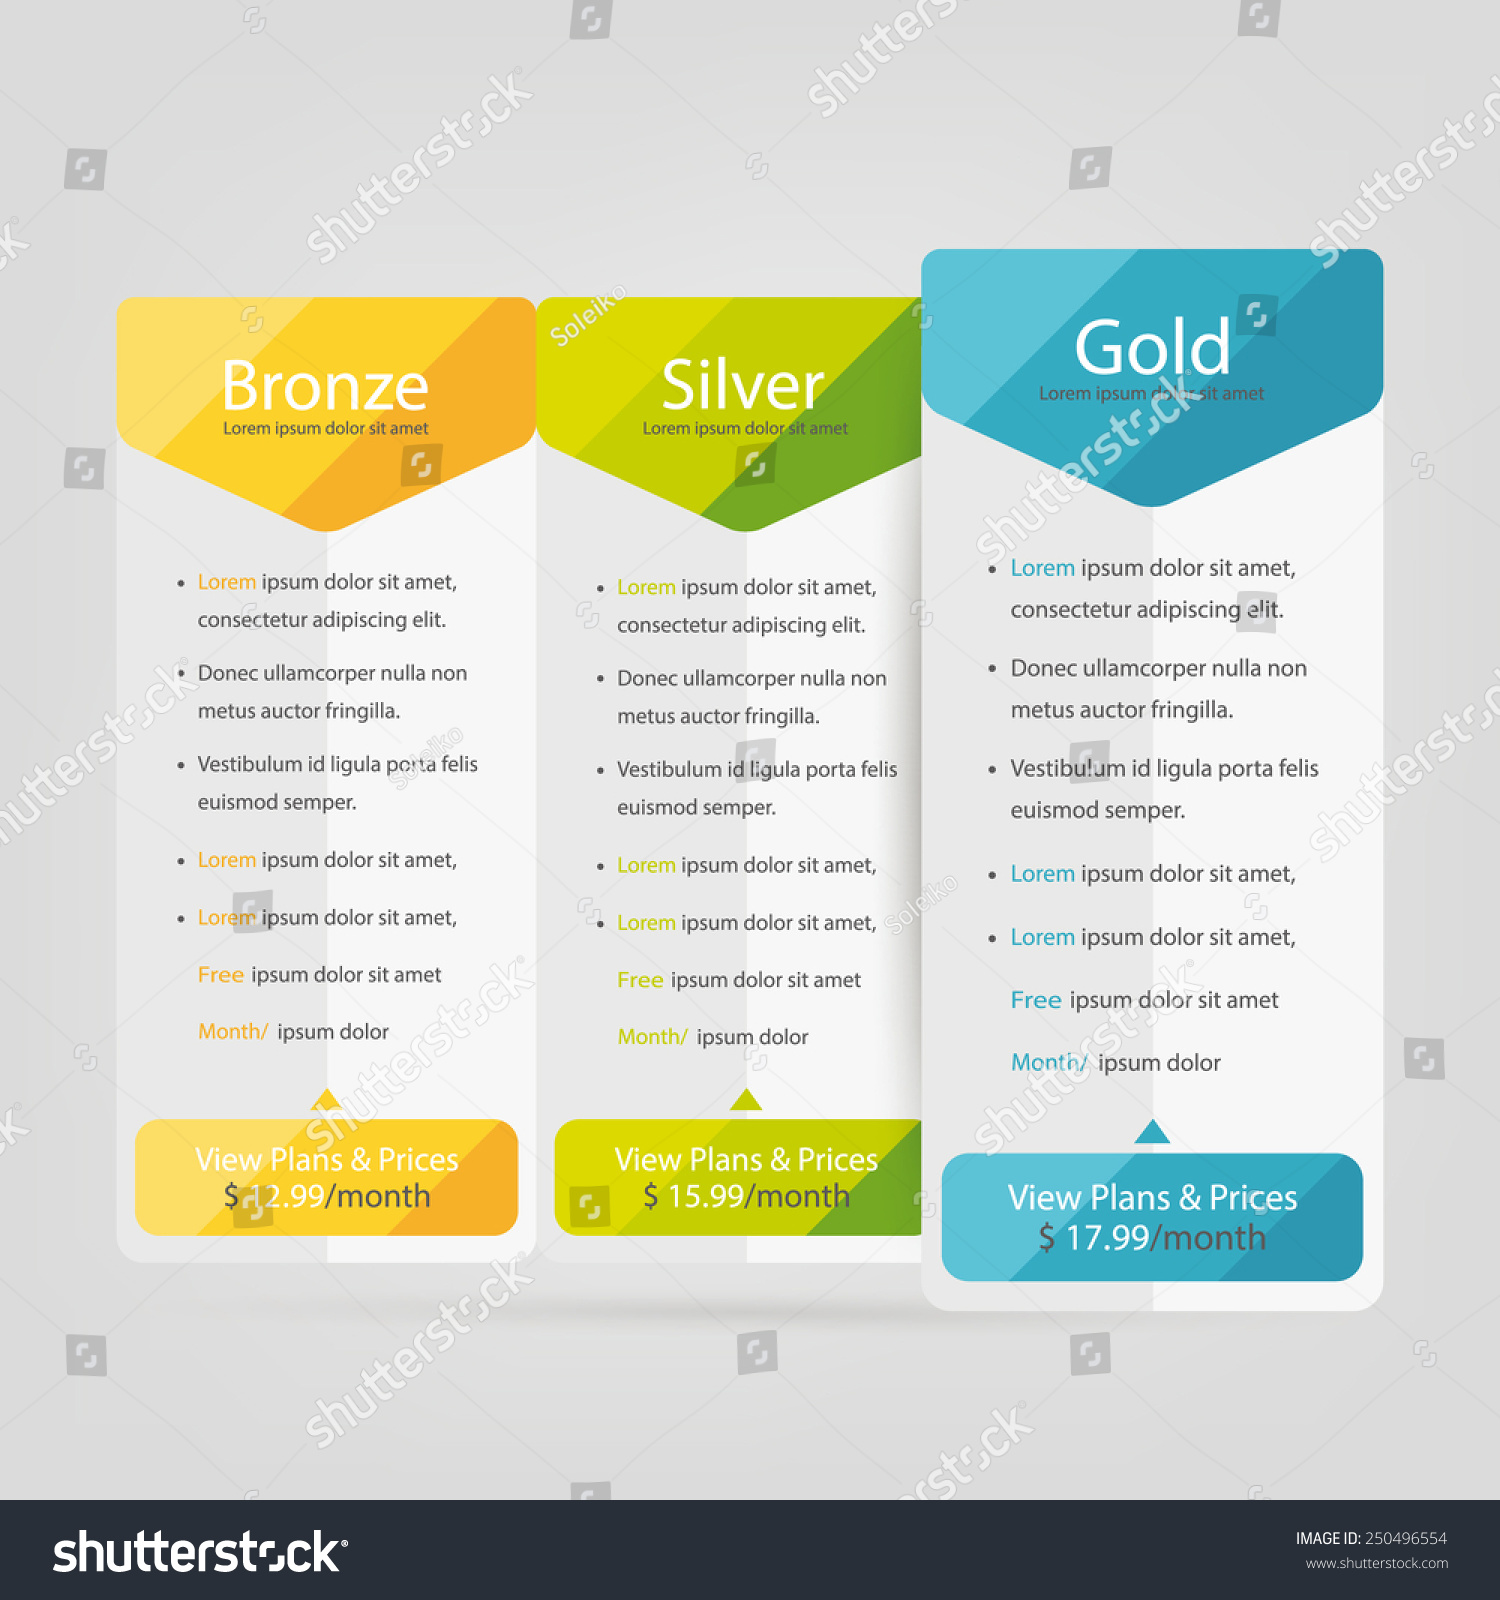 Free banner images for website - Bright Pricing Table Banner Order Box Button List And Bullet With